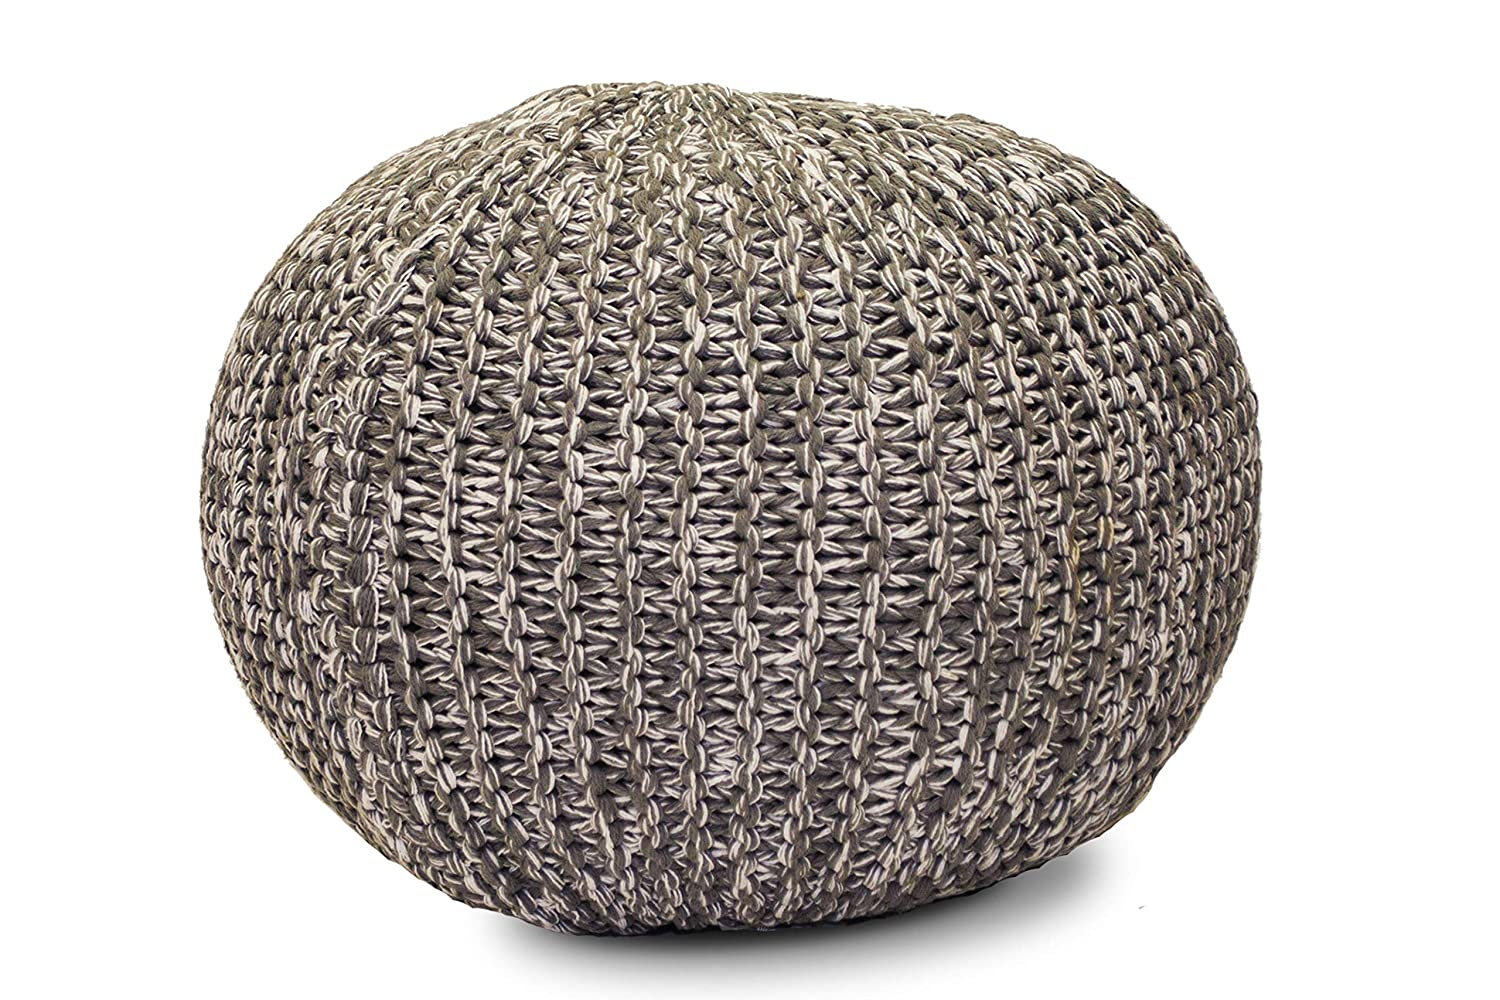 Gneral Woven Floor Seating Cushions Pouf, Knitted Footstool